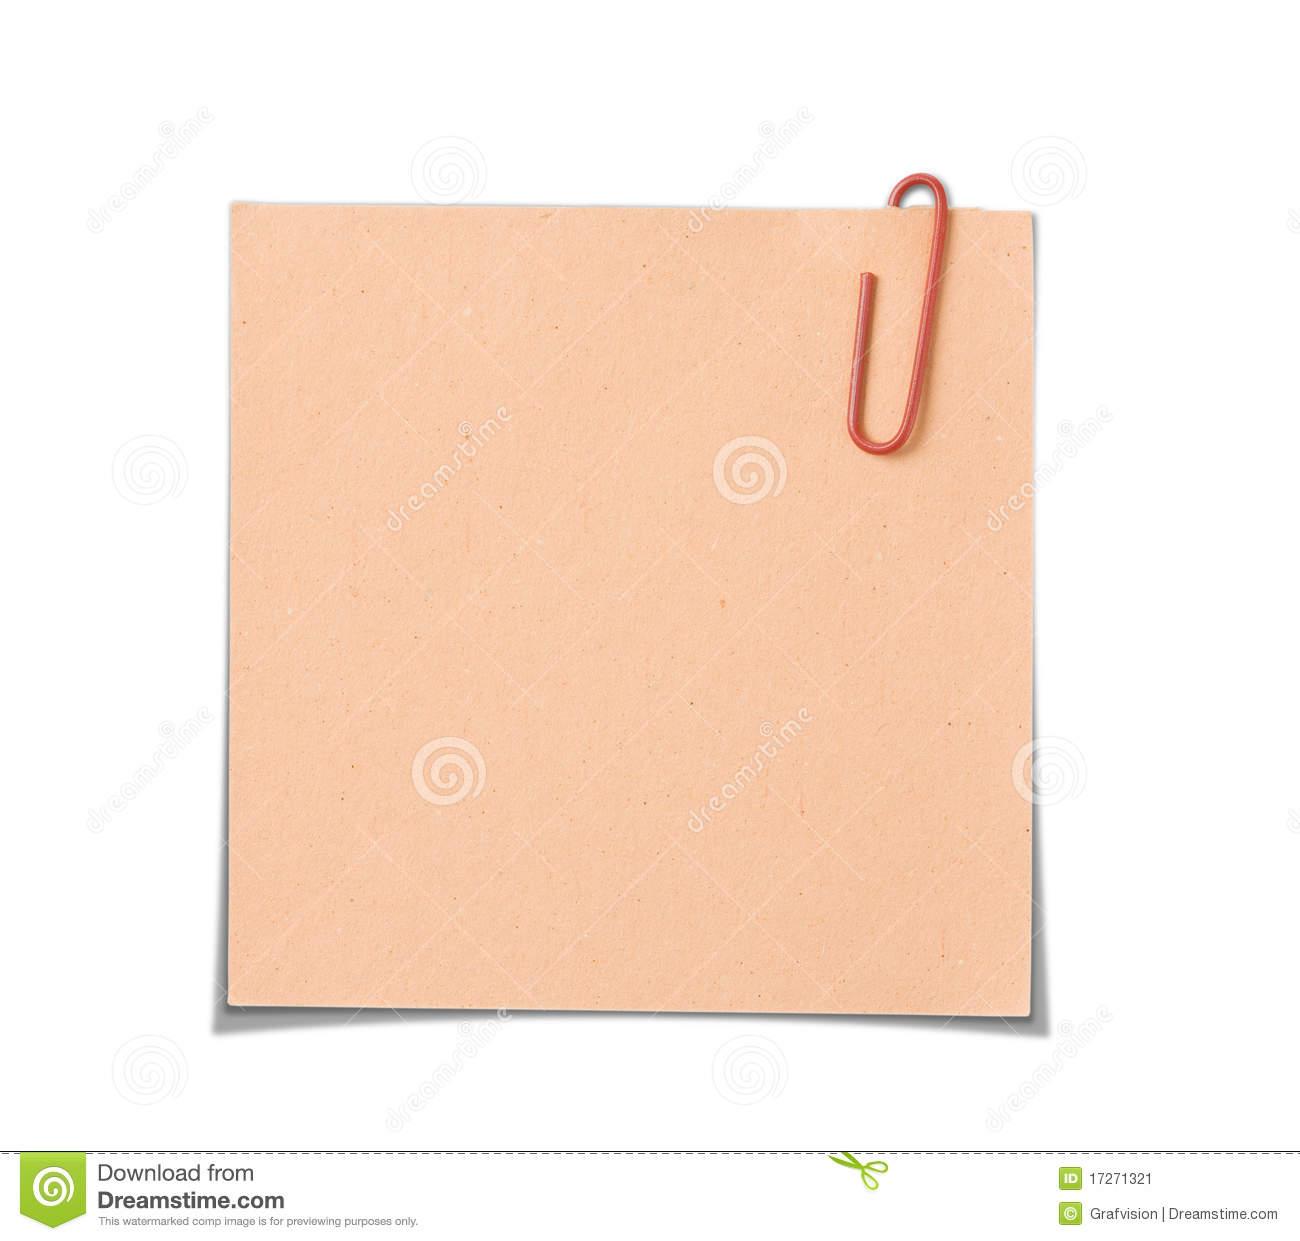 Paper Notes Stock Image - Image: 17271321